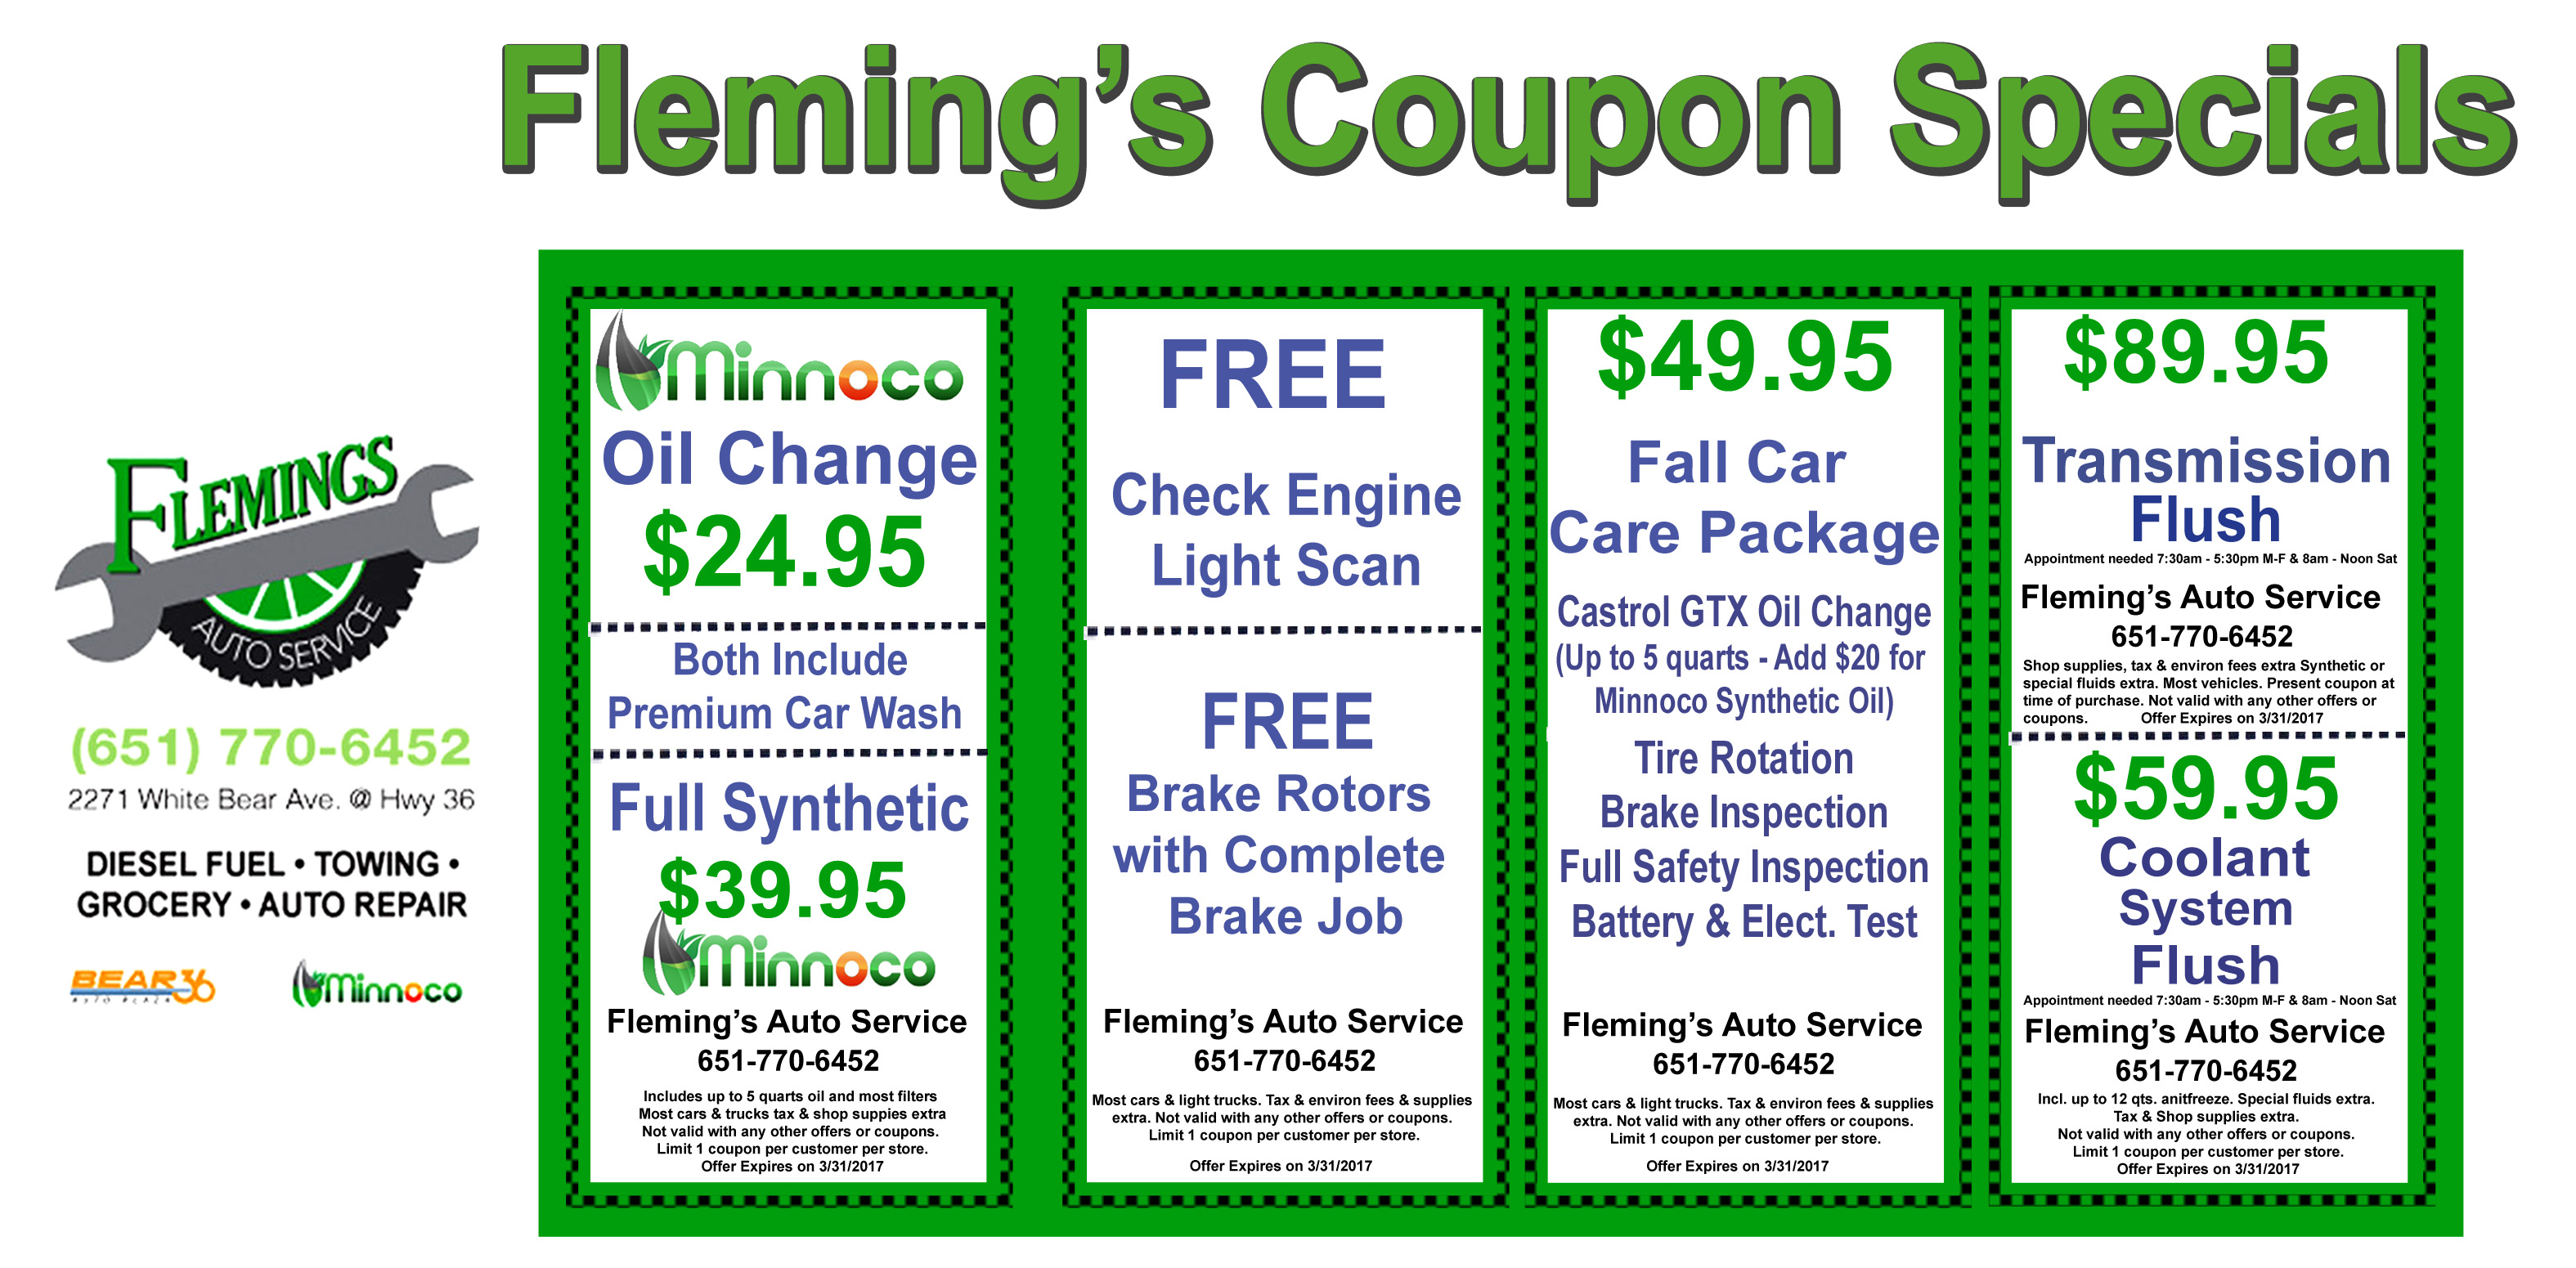 fleming 39 s auto service repair coupons. Black Bedroom Furniture Sets. Home Design Ideas